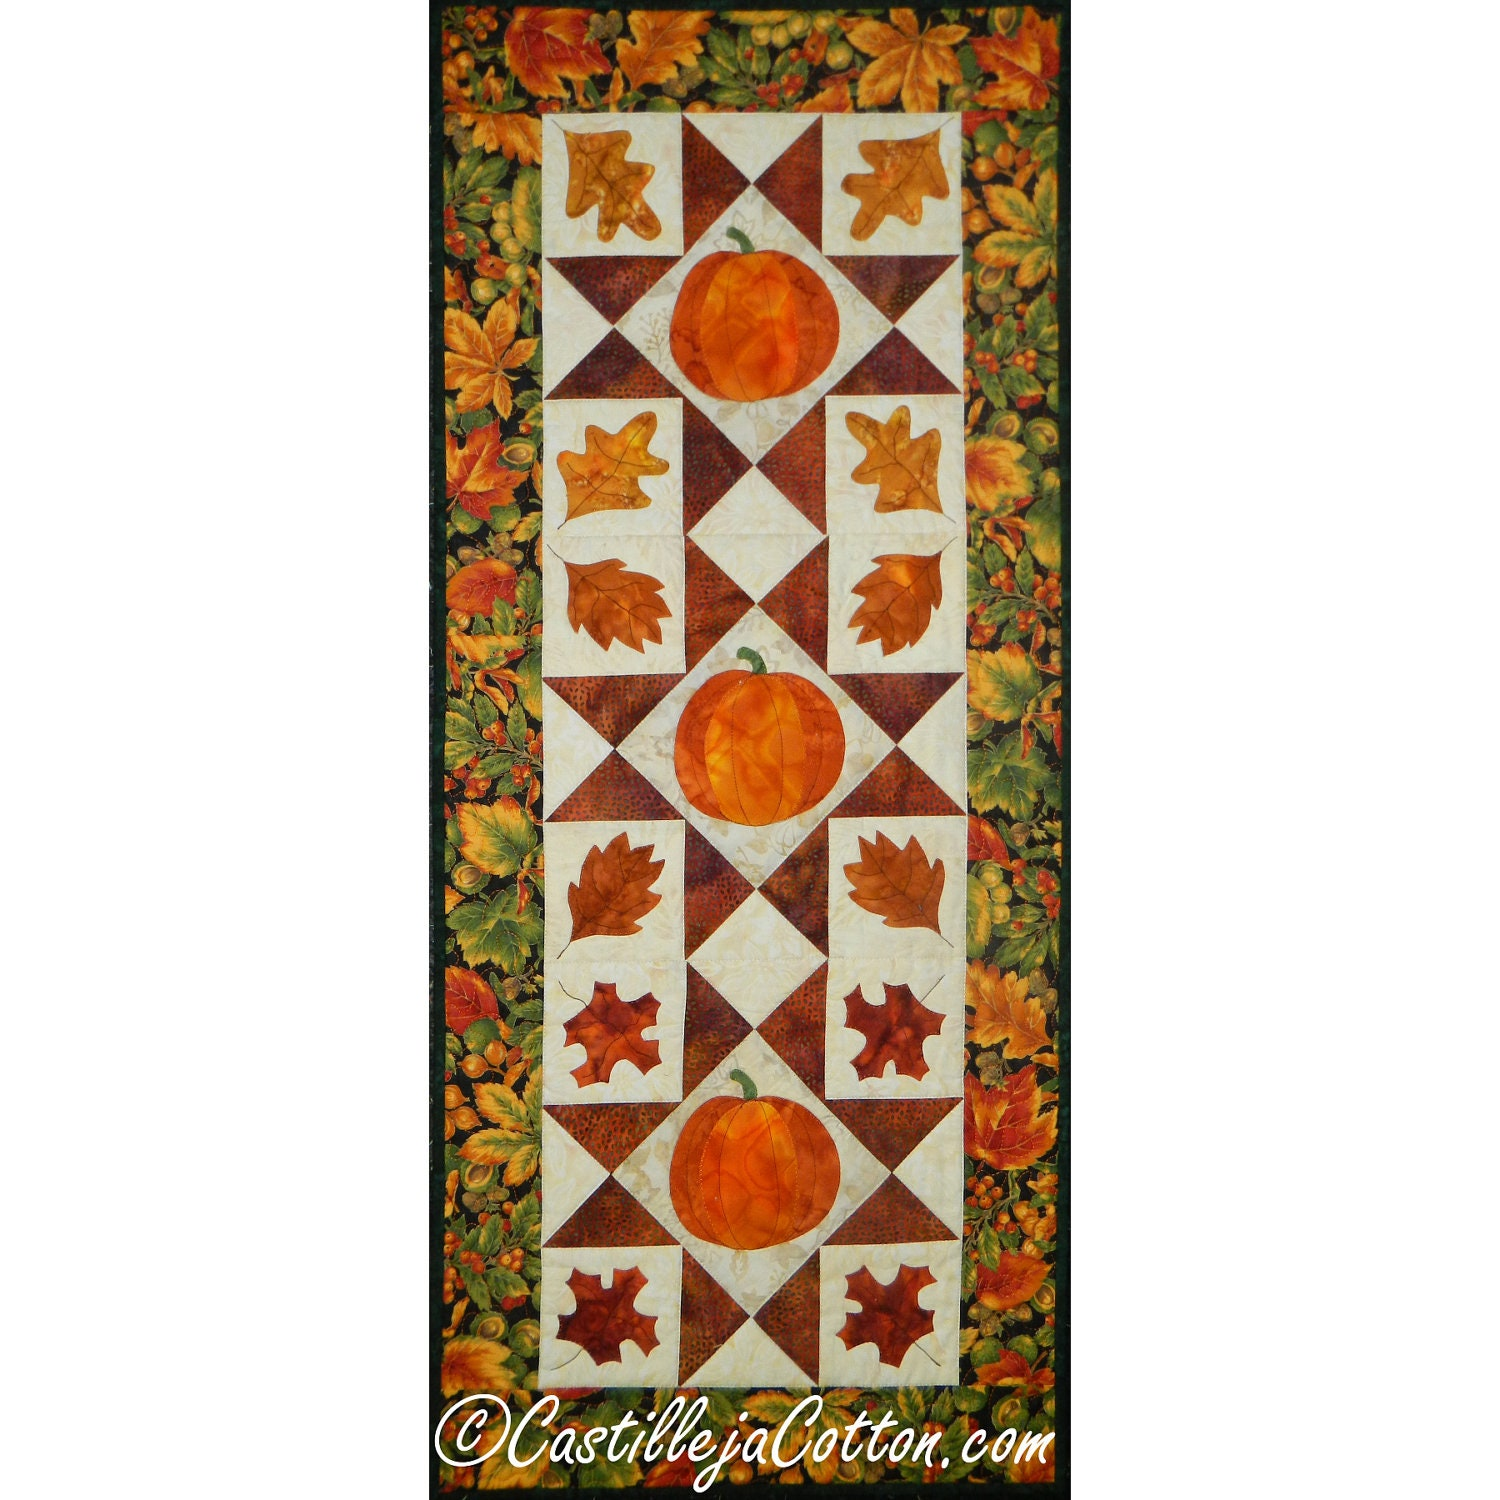 On Sale Starry Autumn Table Runner or Wall Hanging - castillejacotton